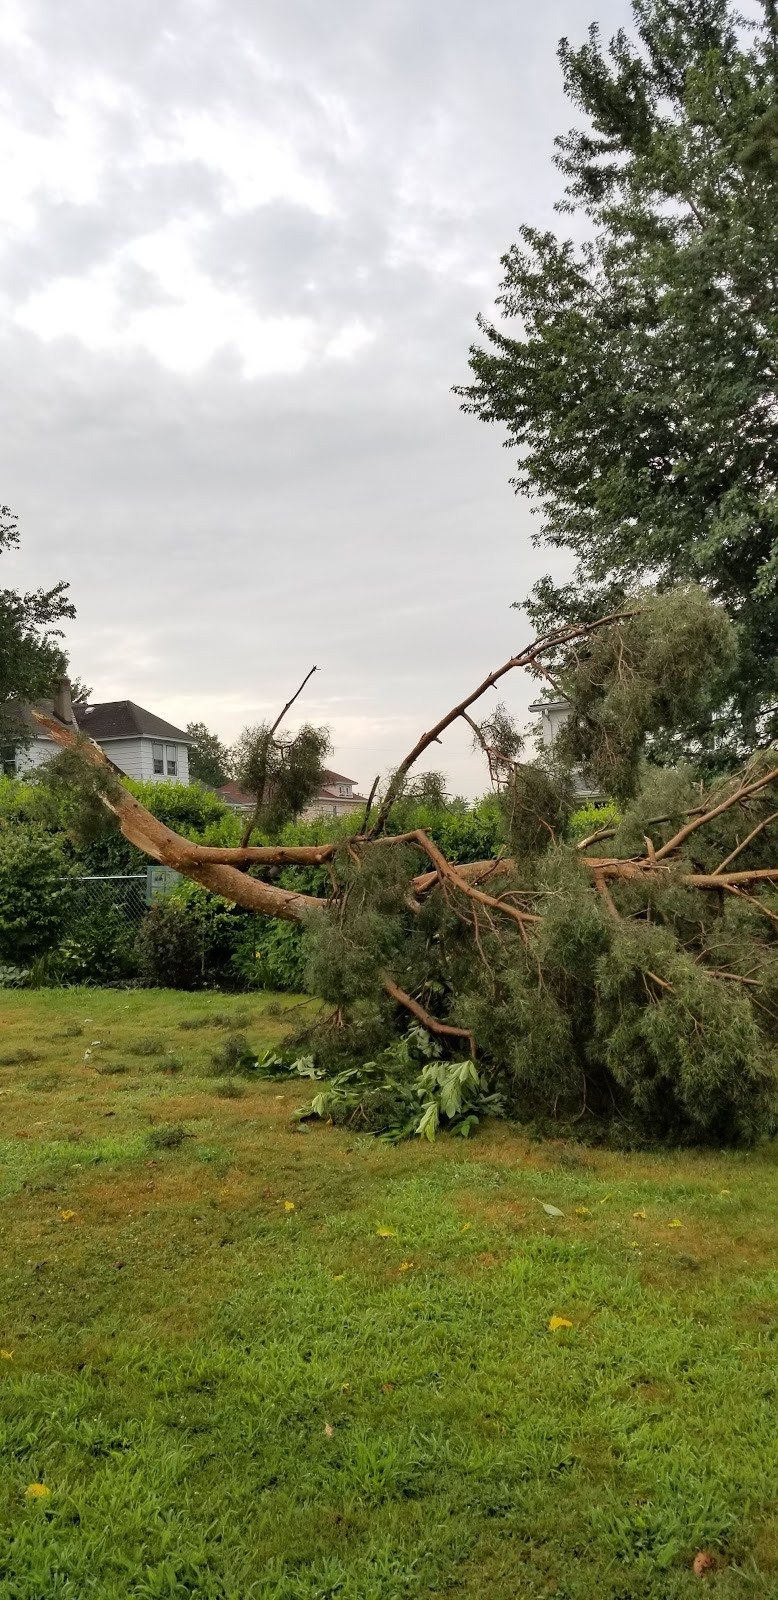 That time a bad storm crashed this tree into my yard. I lost my yoshino cherry tree sadly 😔 July 31, 2019